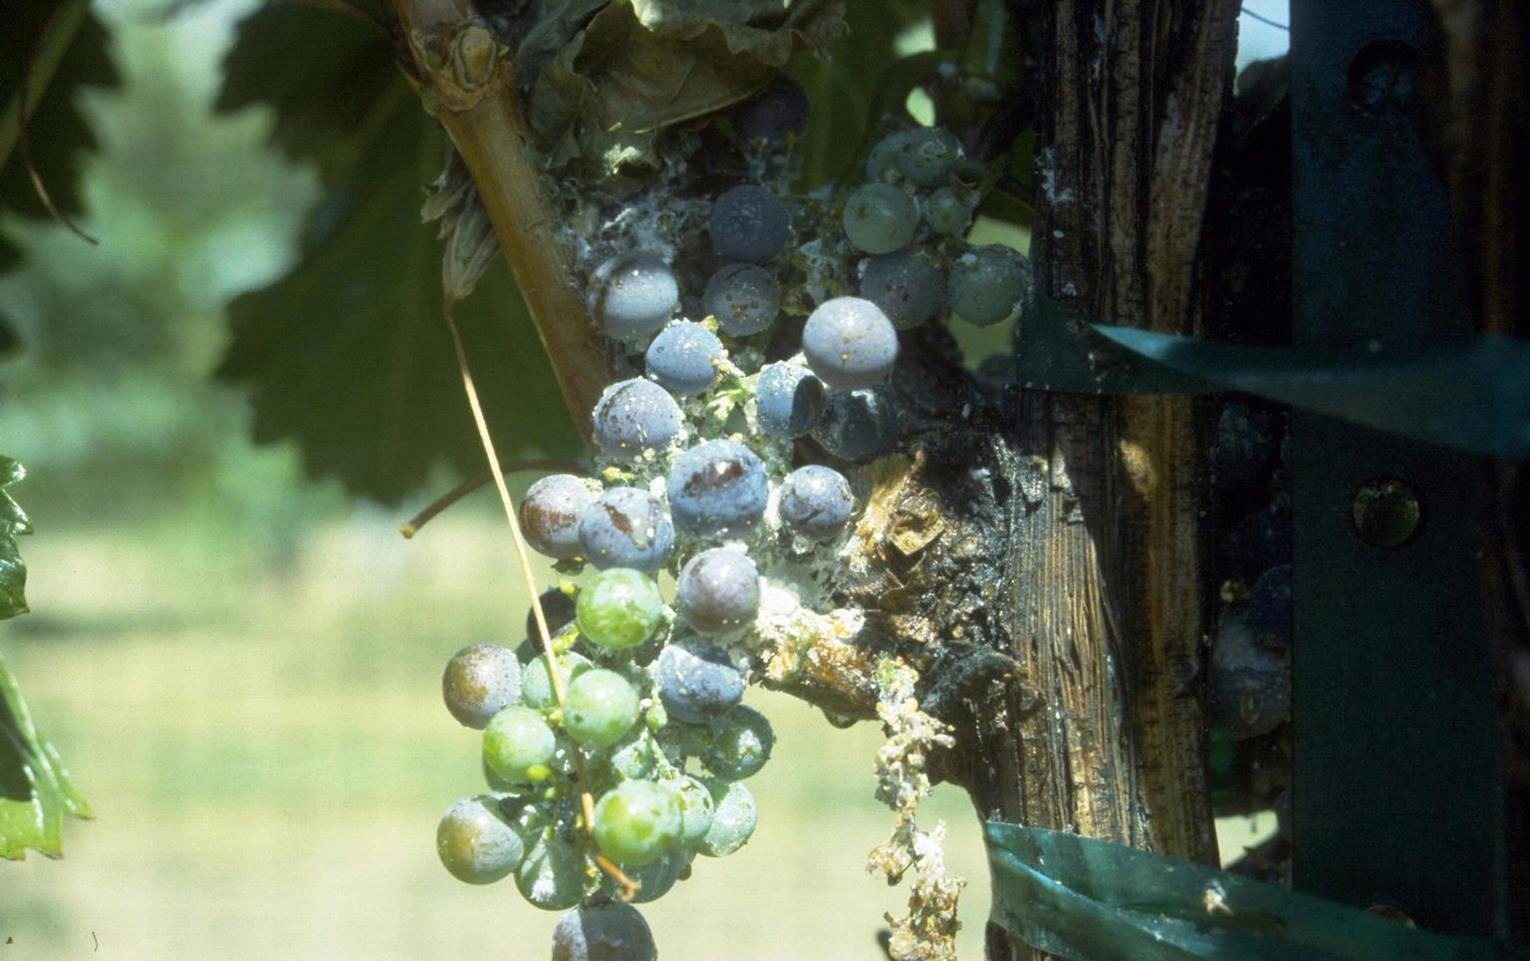 Grape_mealybug_1.jpg